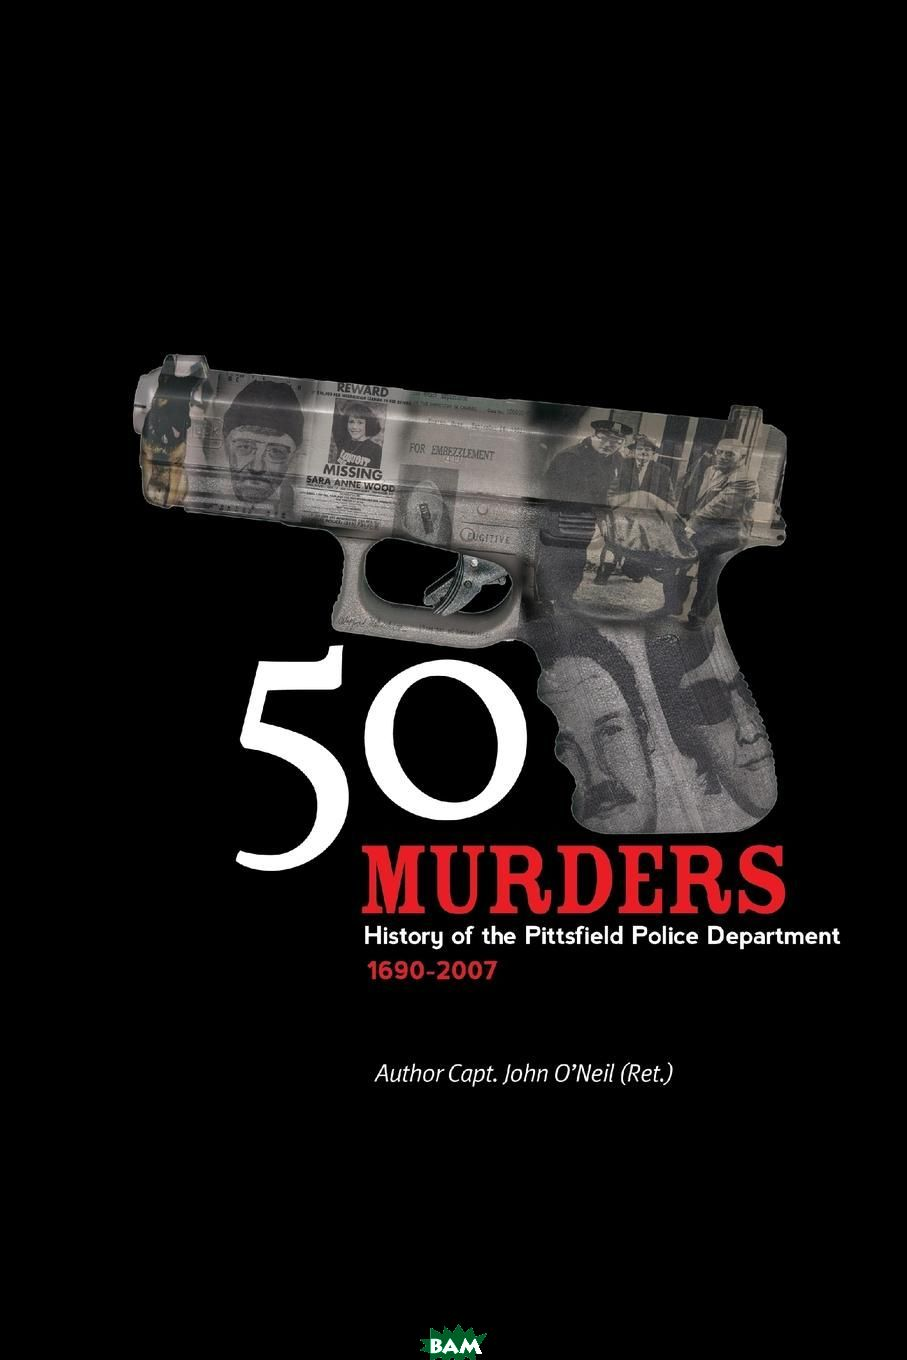 50 Murders - History of the Pittsfield Police